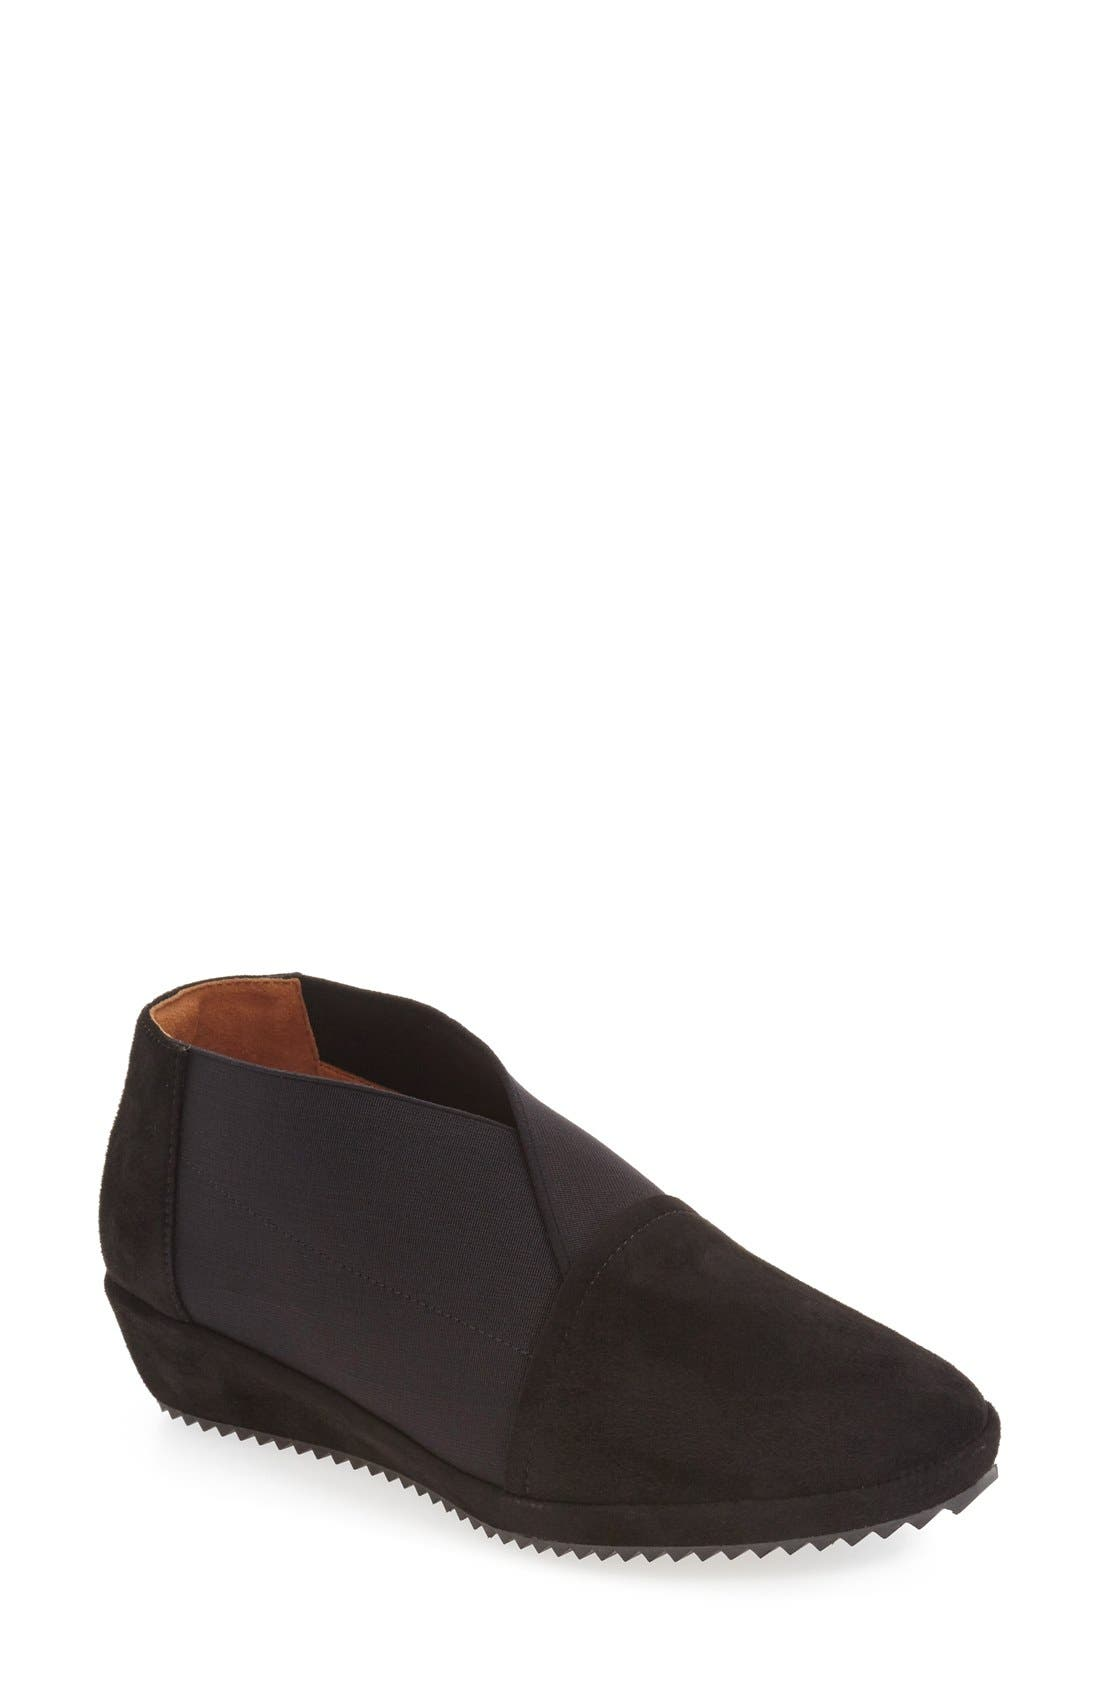 'Bowden' Slip-On Wedge,                             Main thumbnail 1, color,                             001